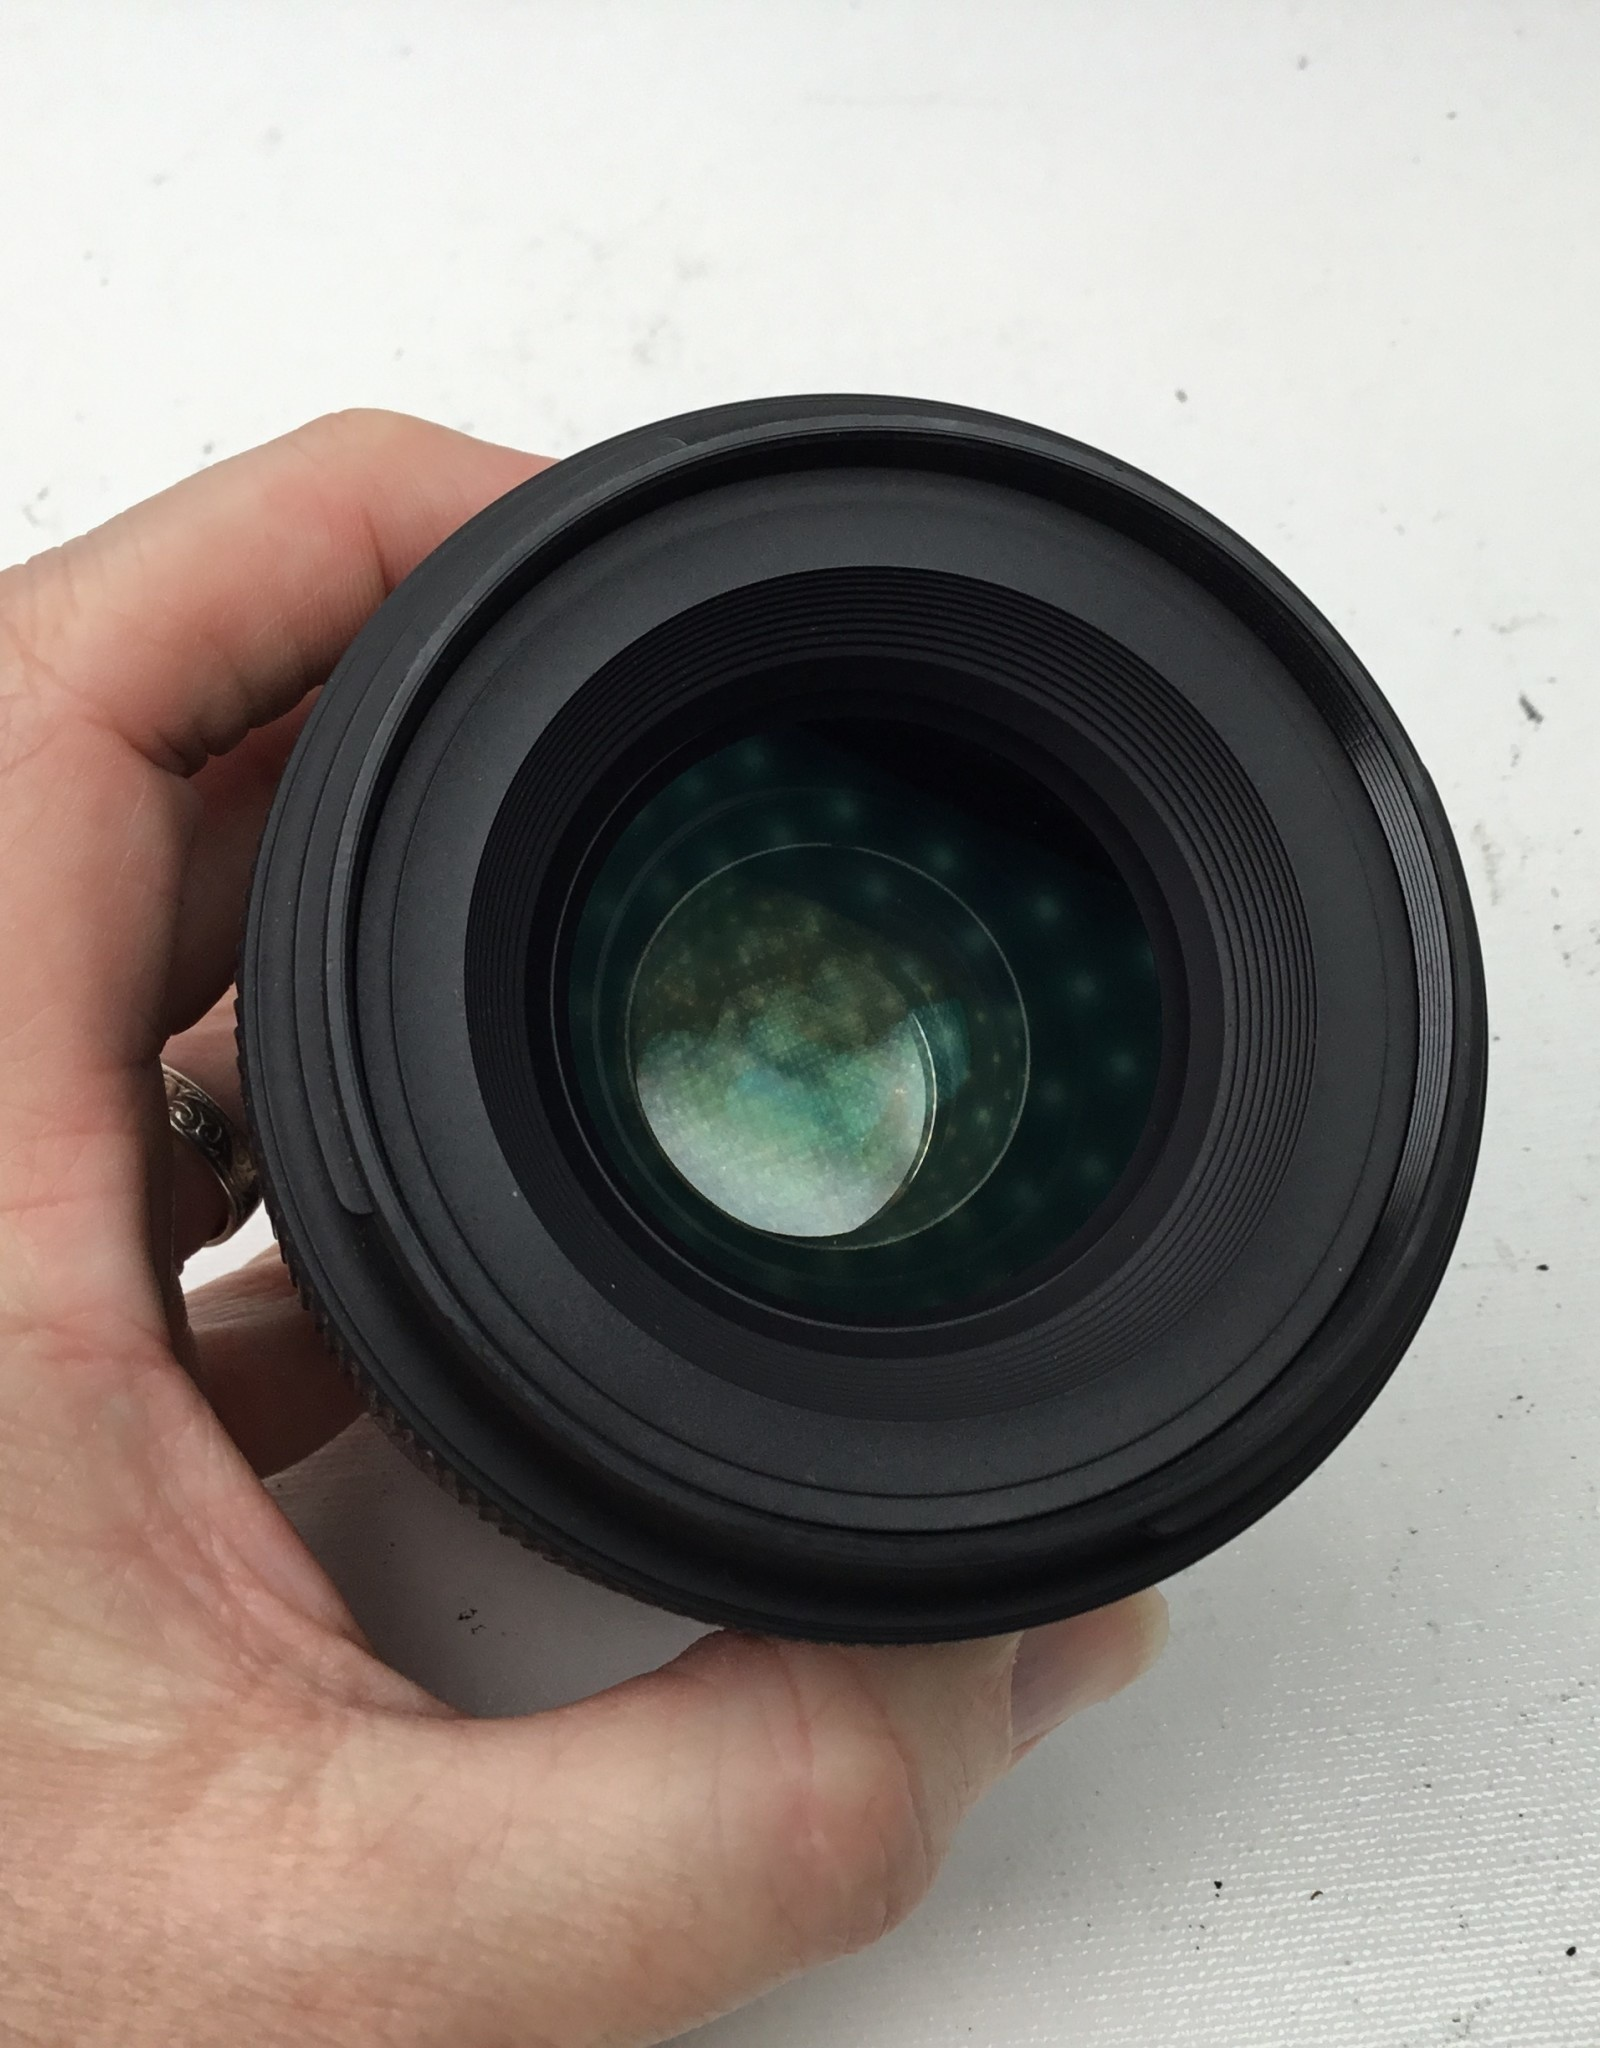 NIKON Tamron SP 45mm f1.8 VC Lens for Canon EF Used EX